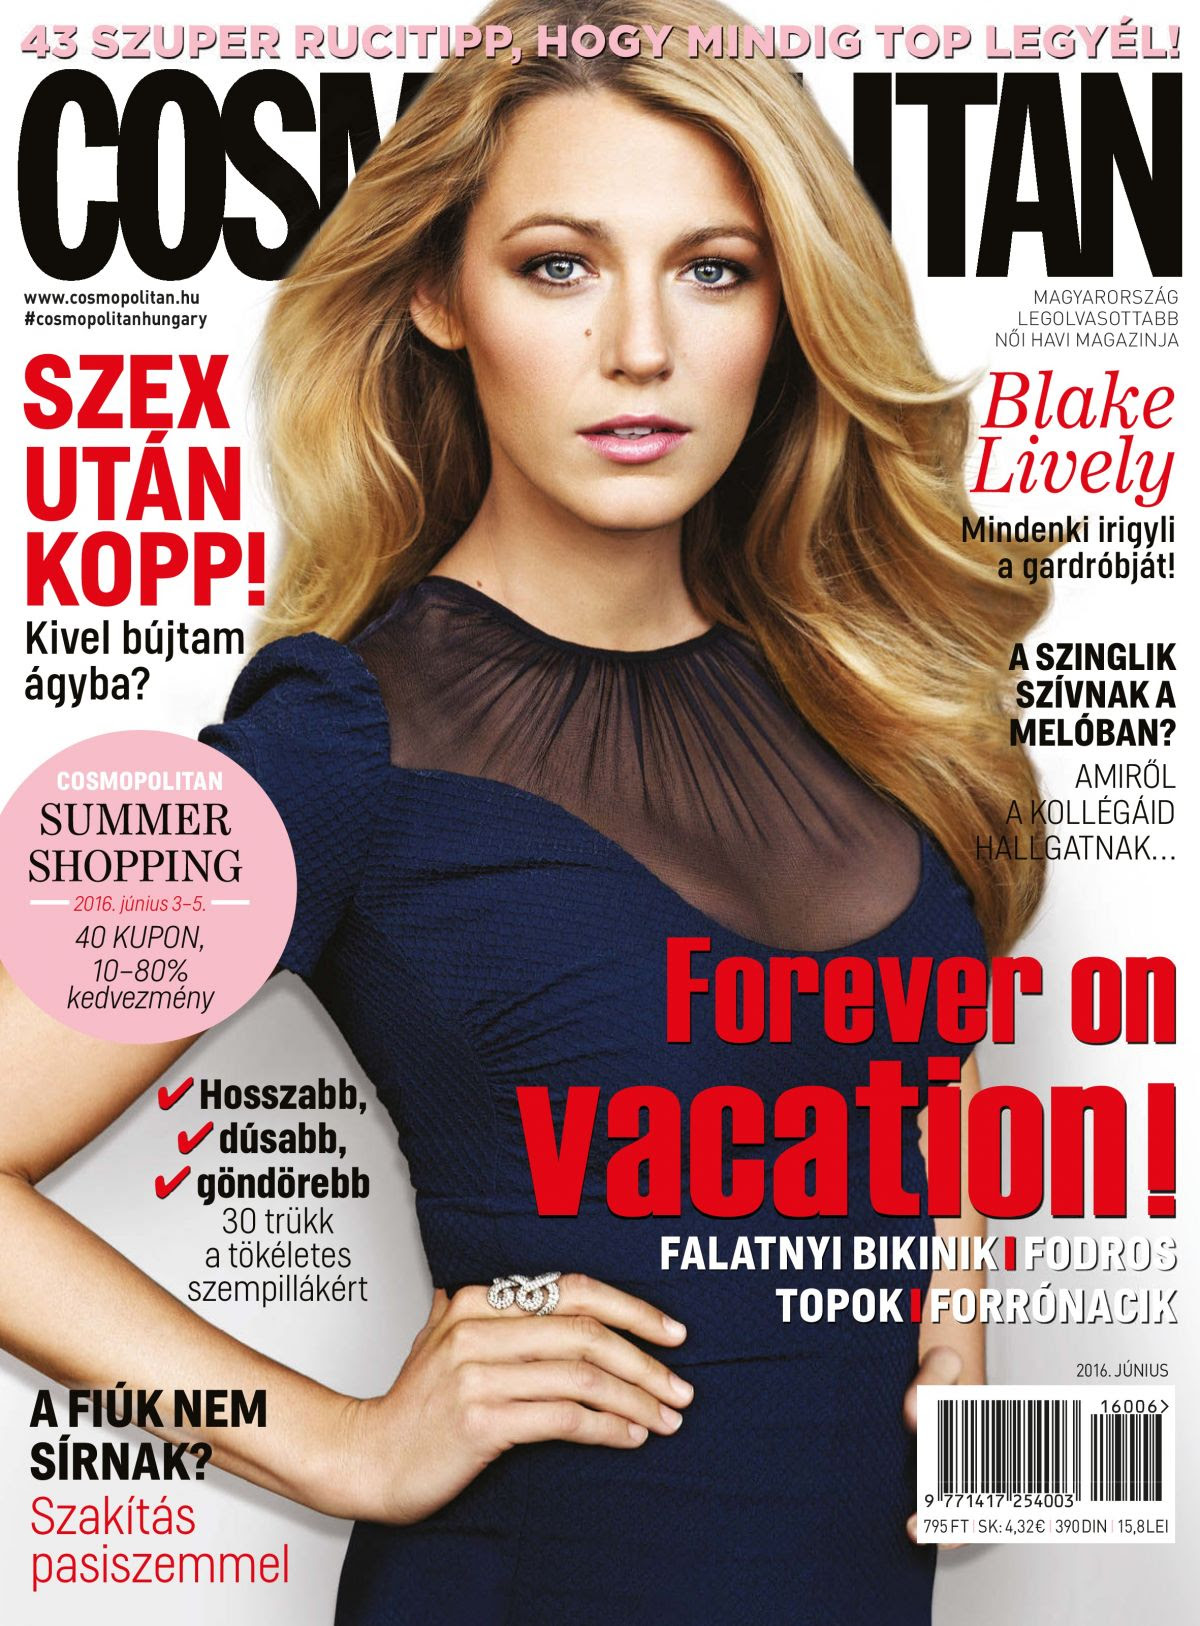 BLAKE LIVELY in Cosmopolitan Magazine, Hungary June 2016 Issue